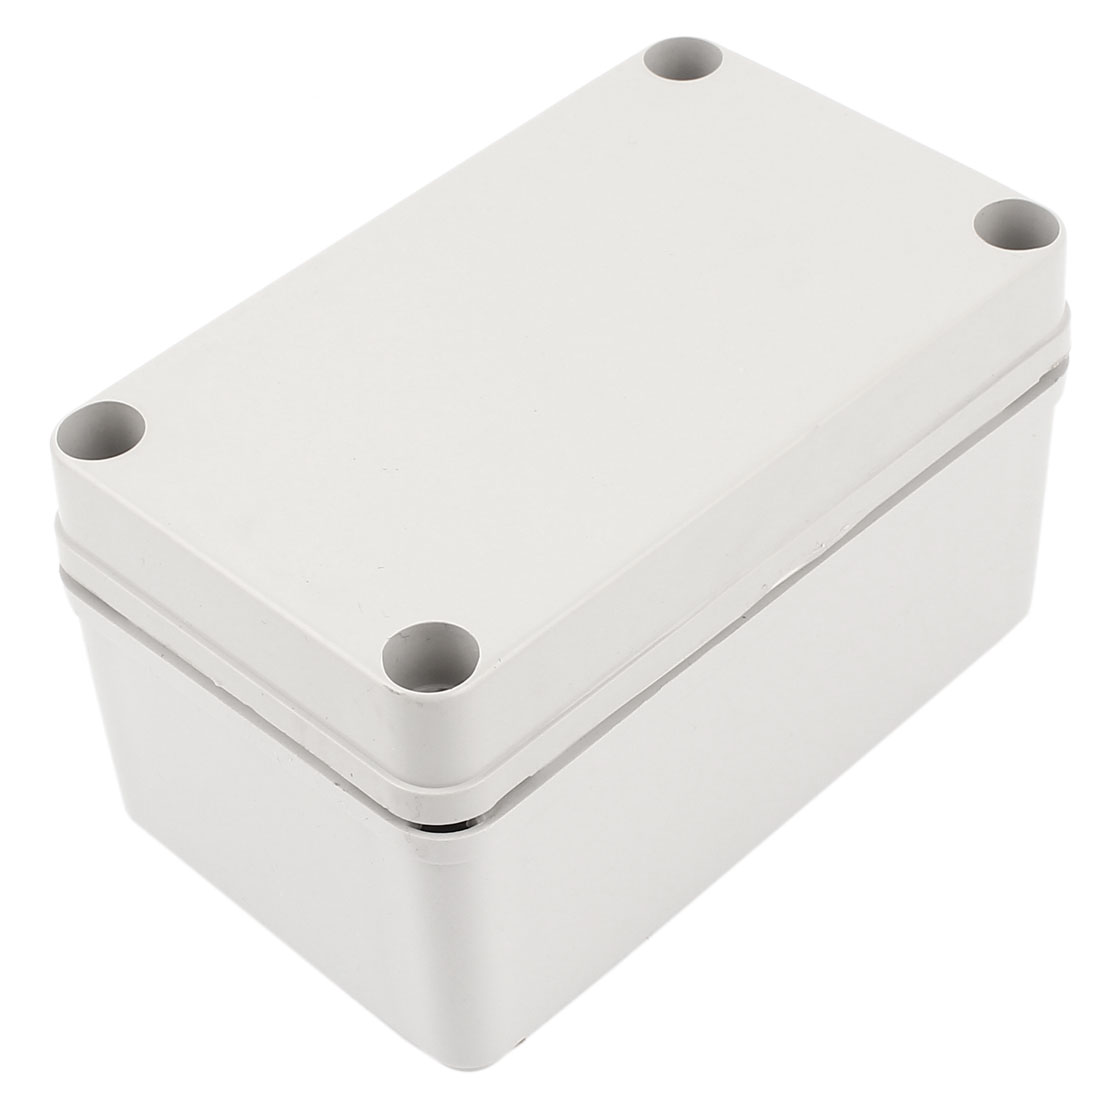 130mm x 80mm x 70mm Waterproof Plastic Sealed DIY Joint Electrical Junction Box